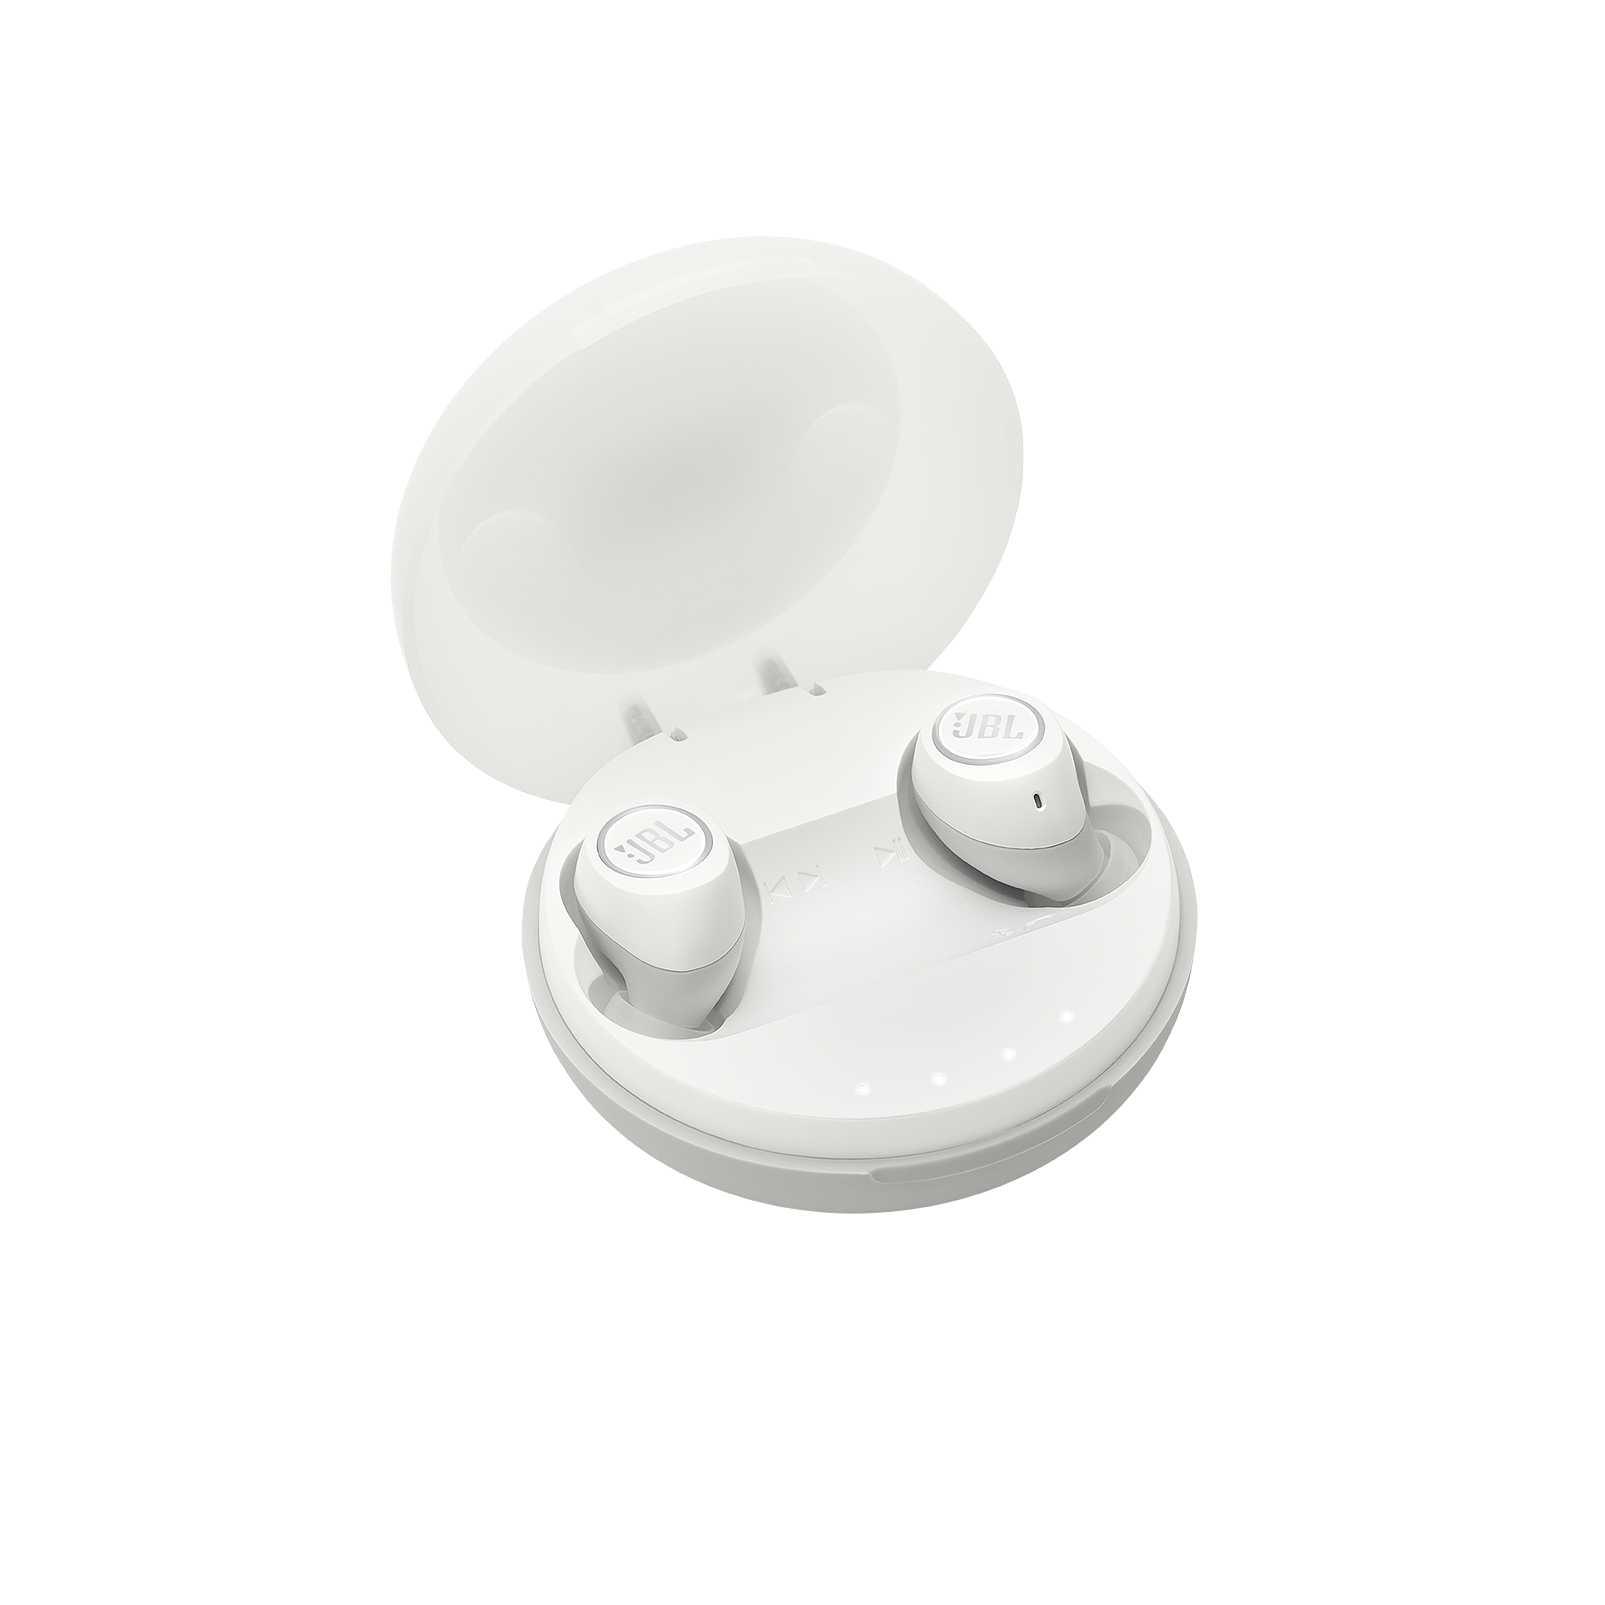 JBL Free X - White - Truly wireless in-ear headphones - Hero